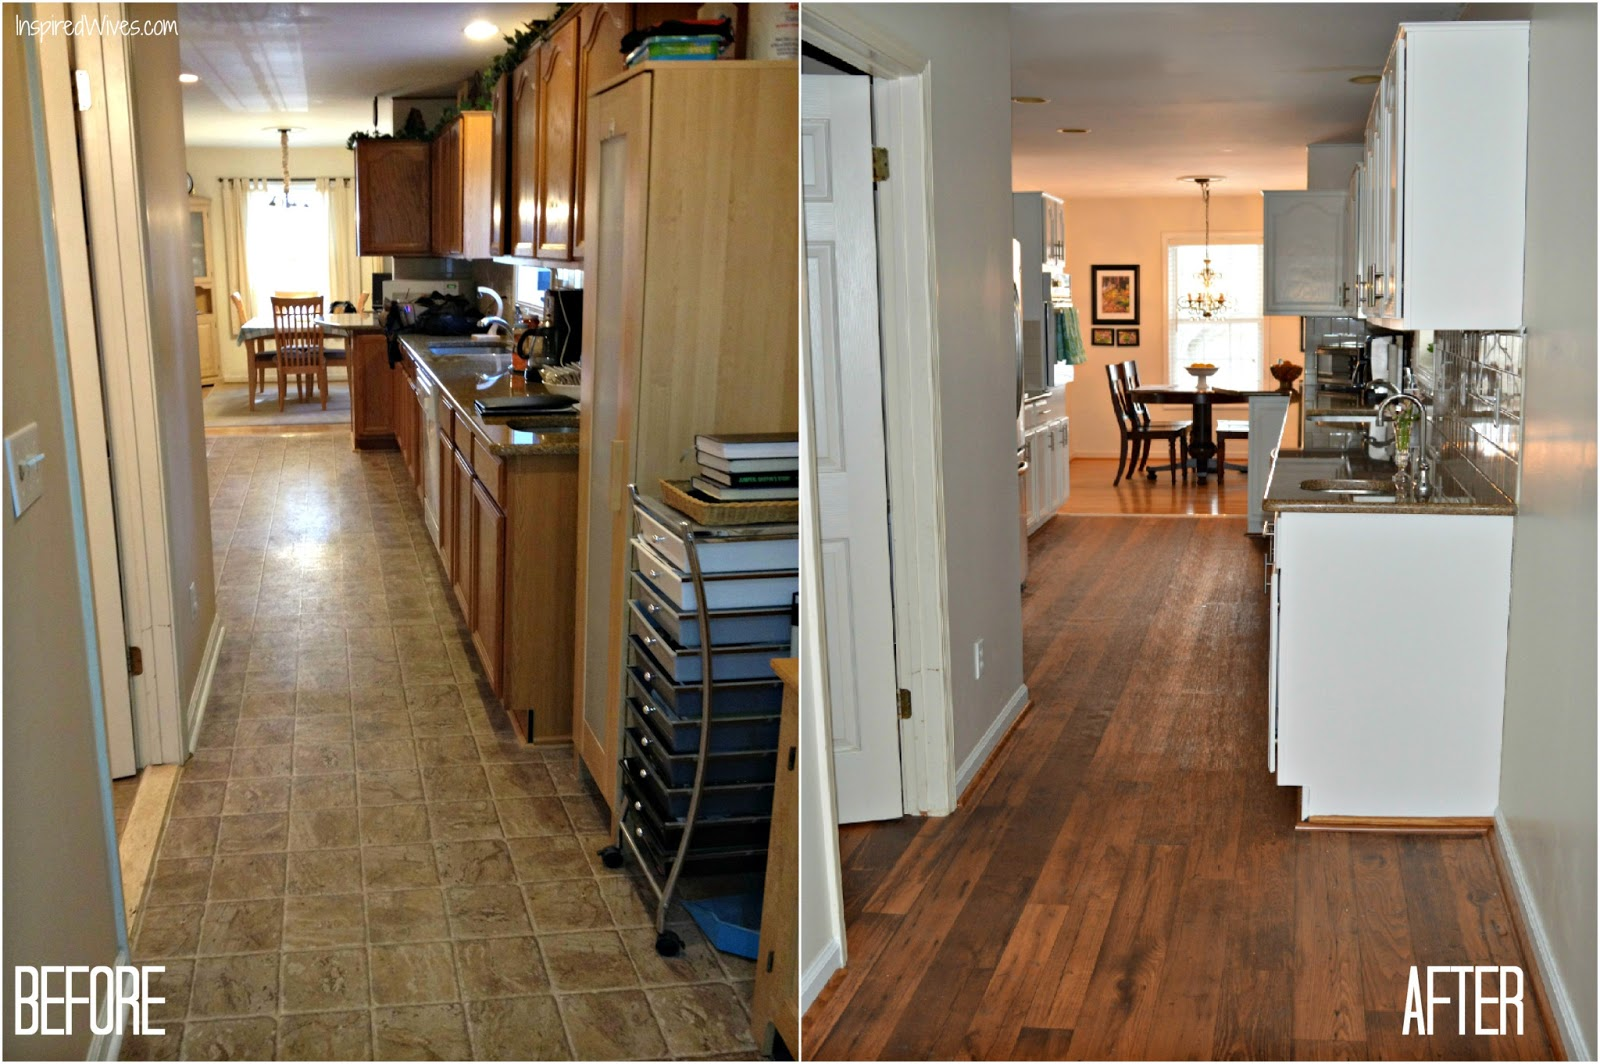 Floor Linoleum For Kitchens Similiar Oak Kitchen Flooring Linoleum Keywords